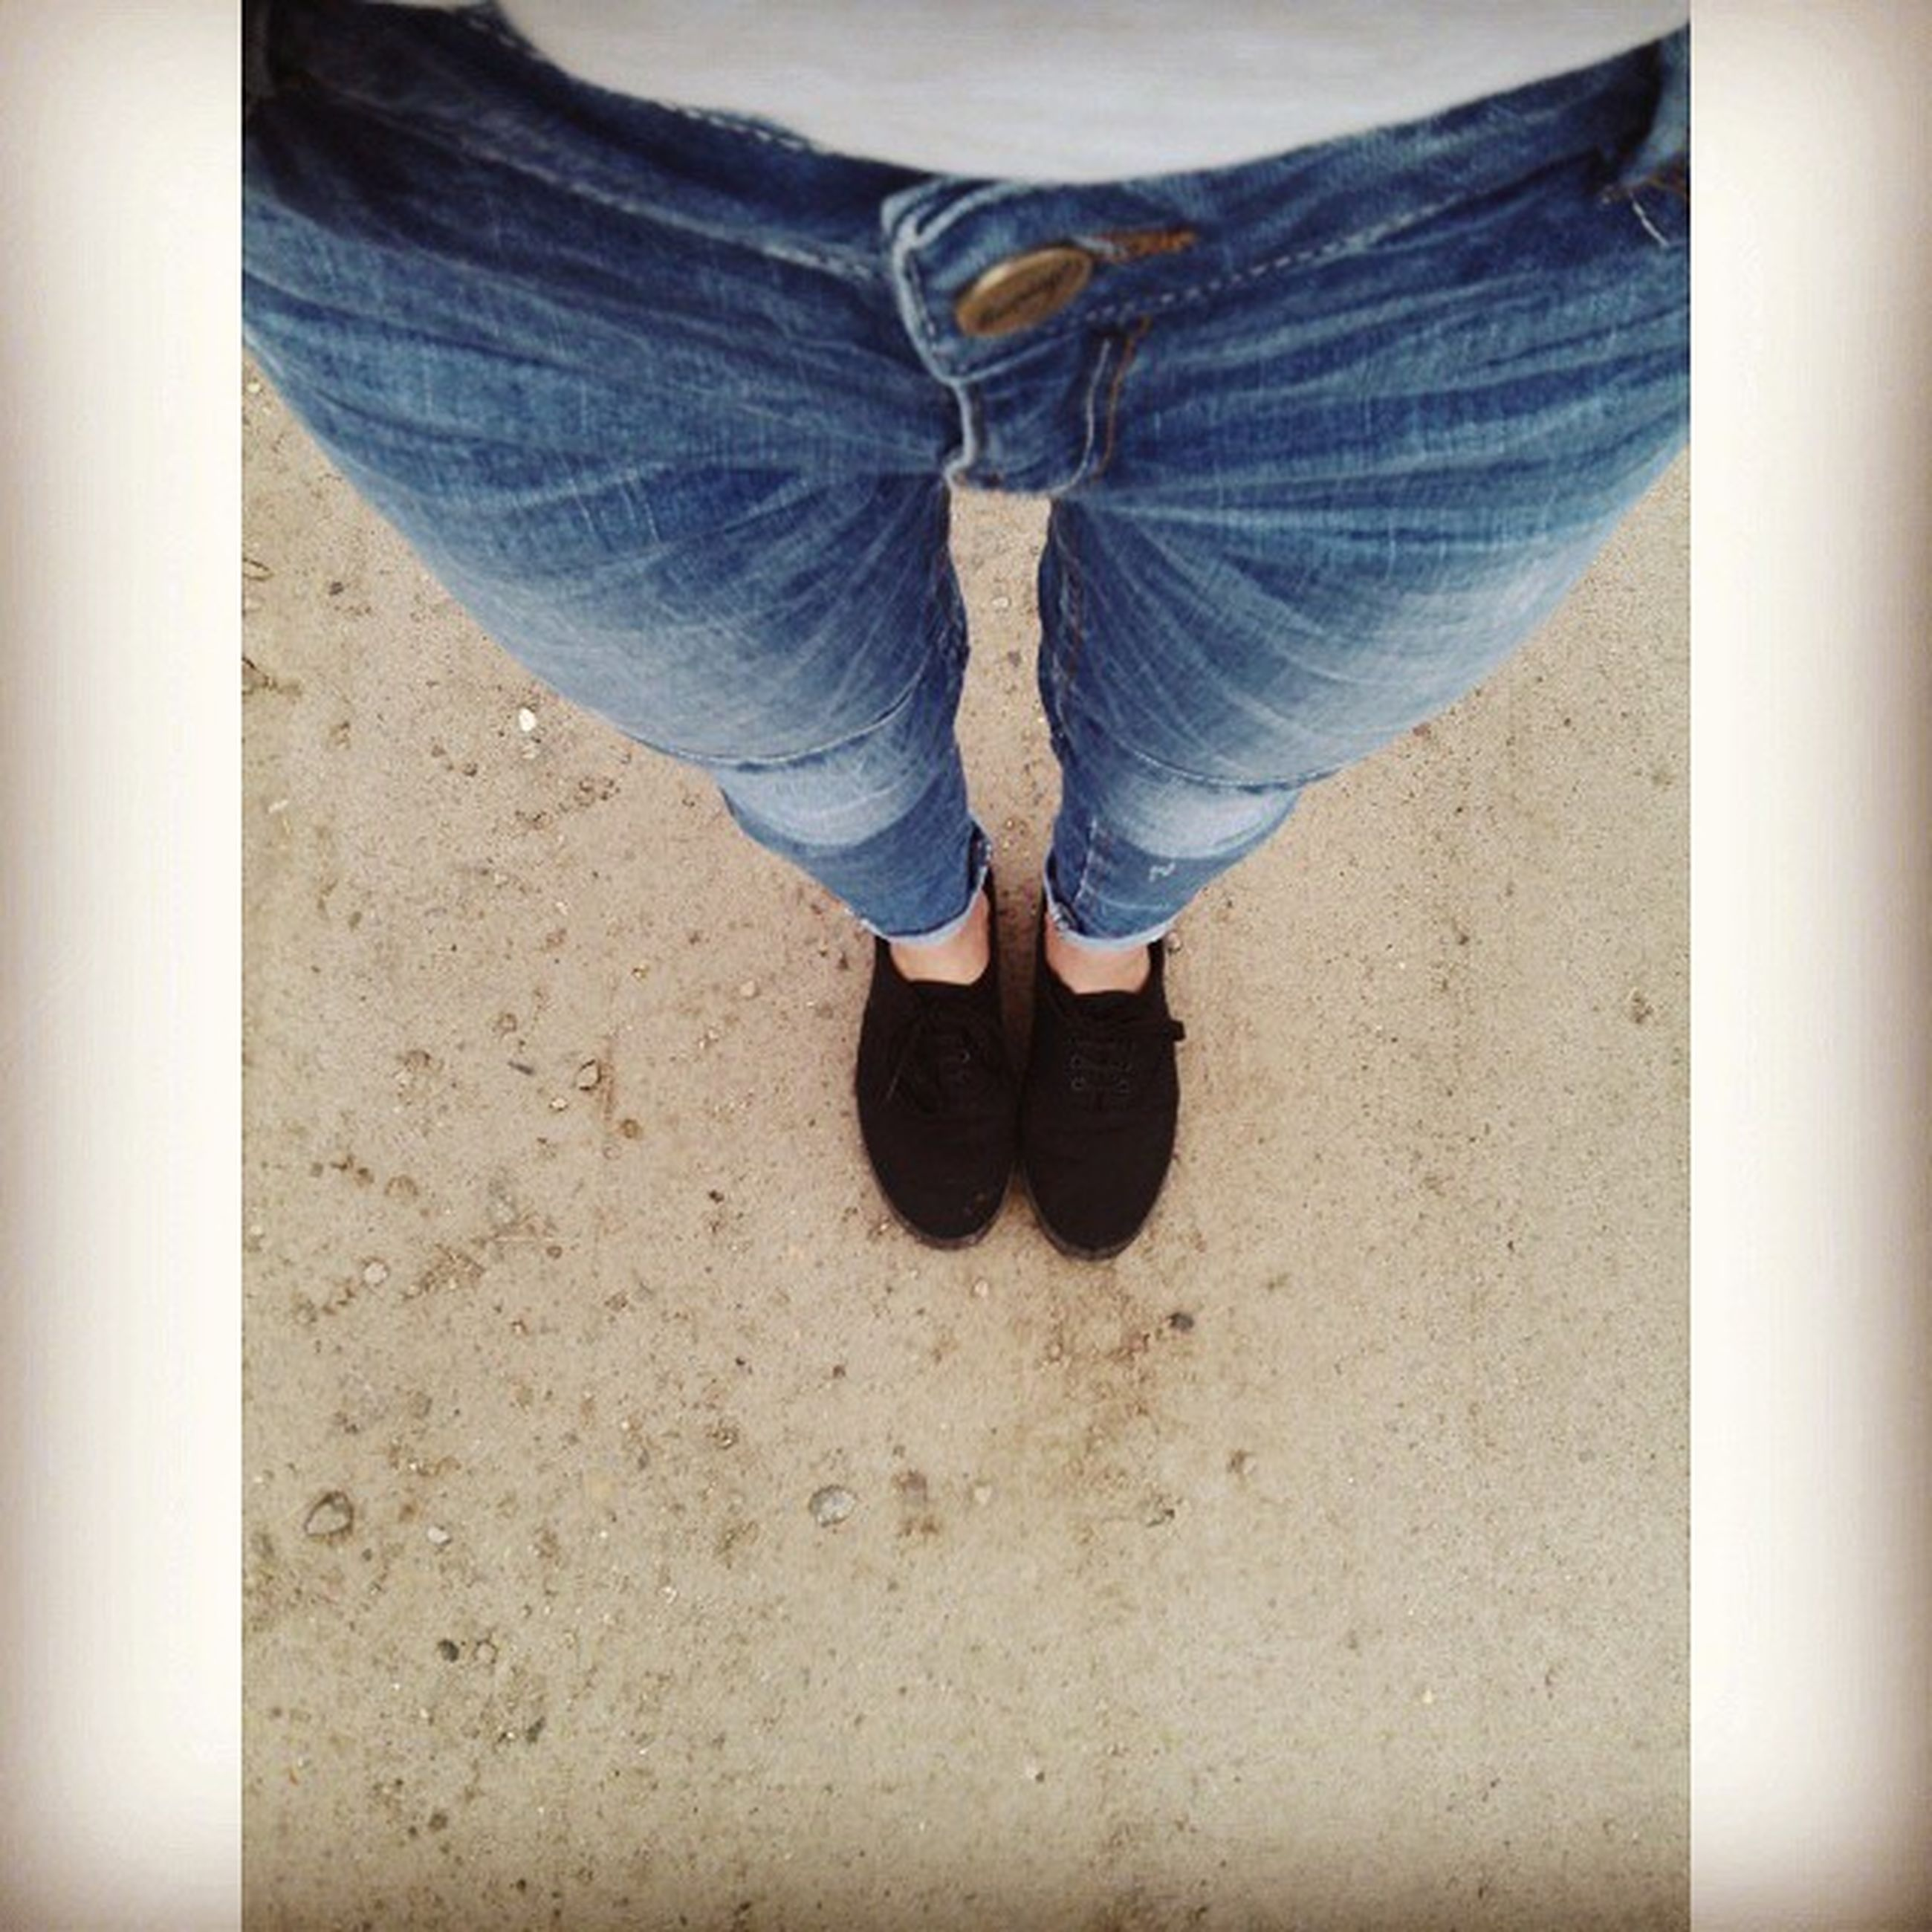 low section, person, lifestyles, standing, shoe, casual clothing, men, jeans, leisure activity, rear view, transfer print, footwear, walking, auto post production filter, day, human foot